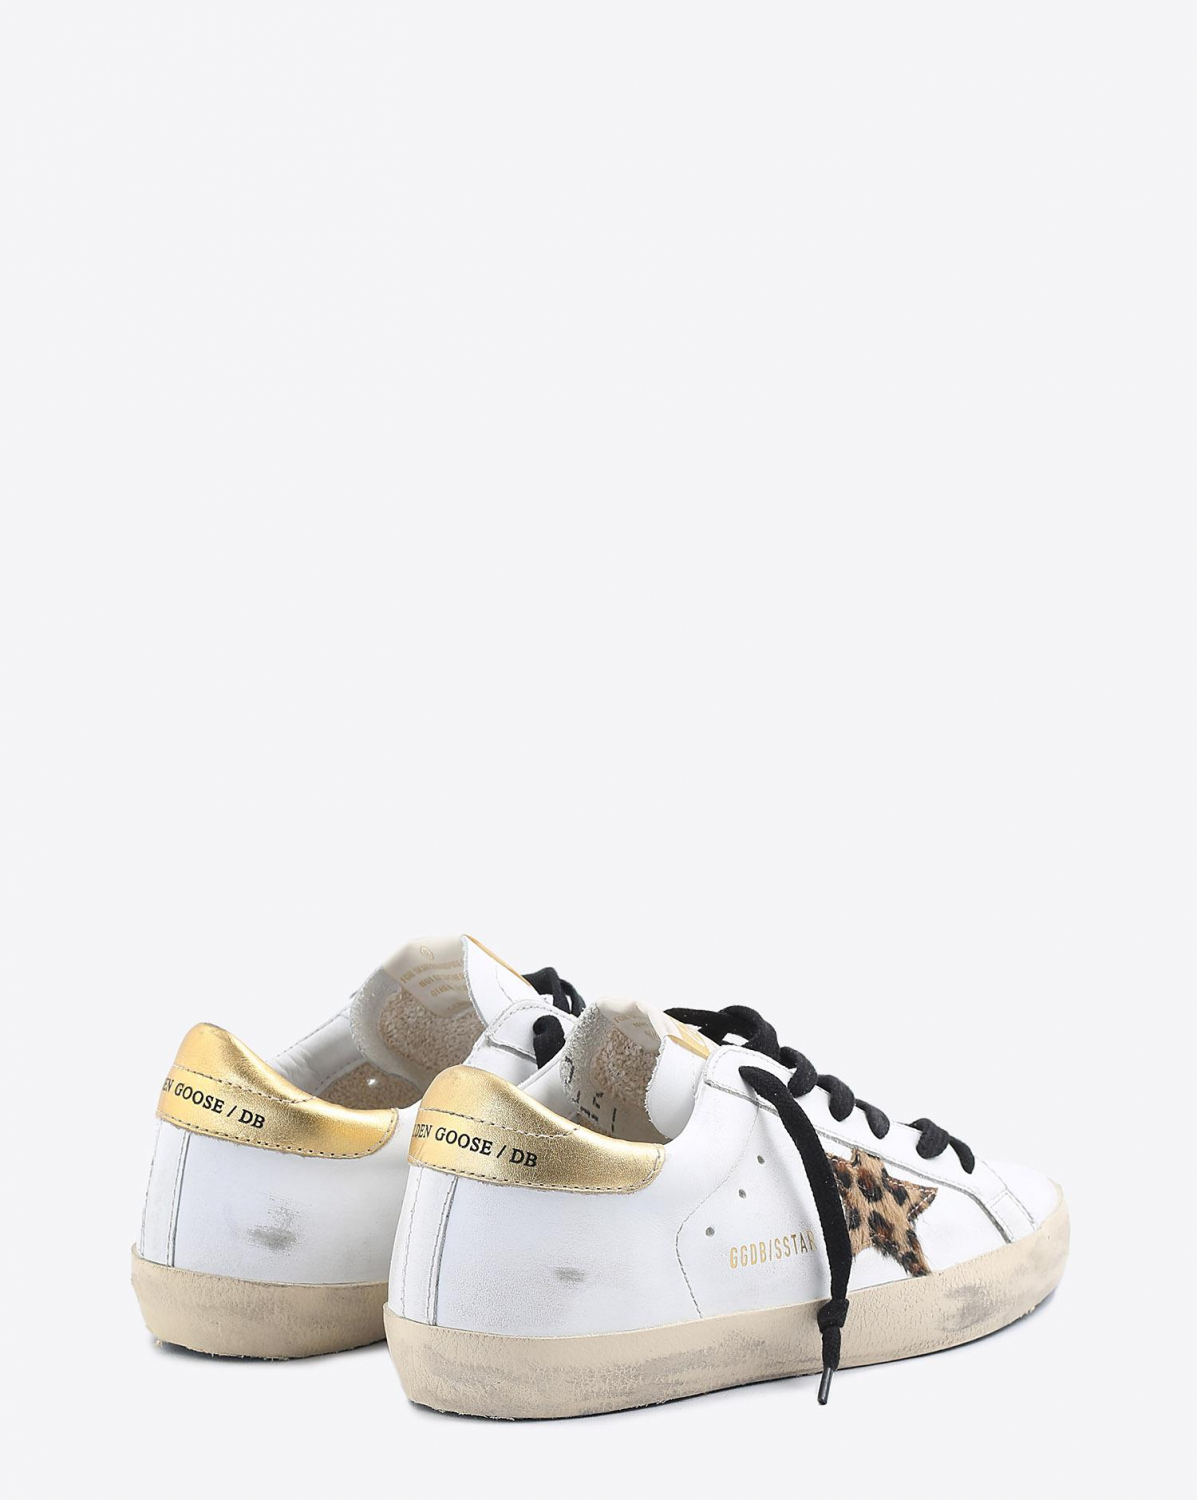 Golden Goose Woman Collection Sneakers Superstar - White Leather - Gold - Leopard Star